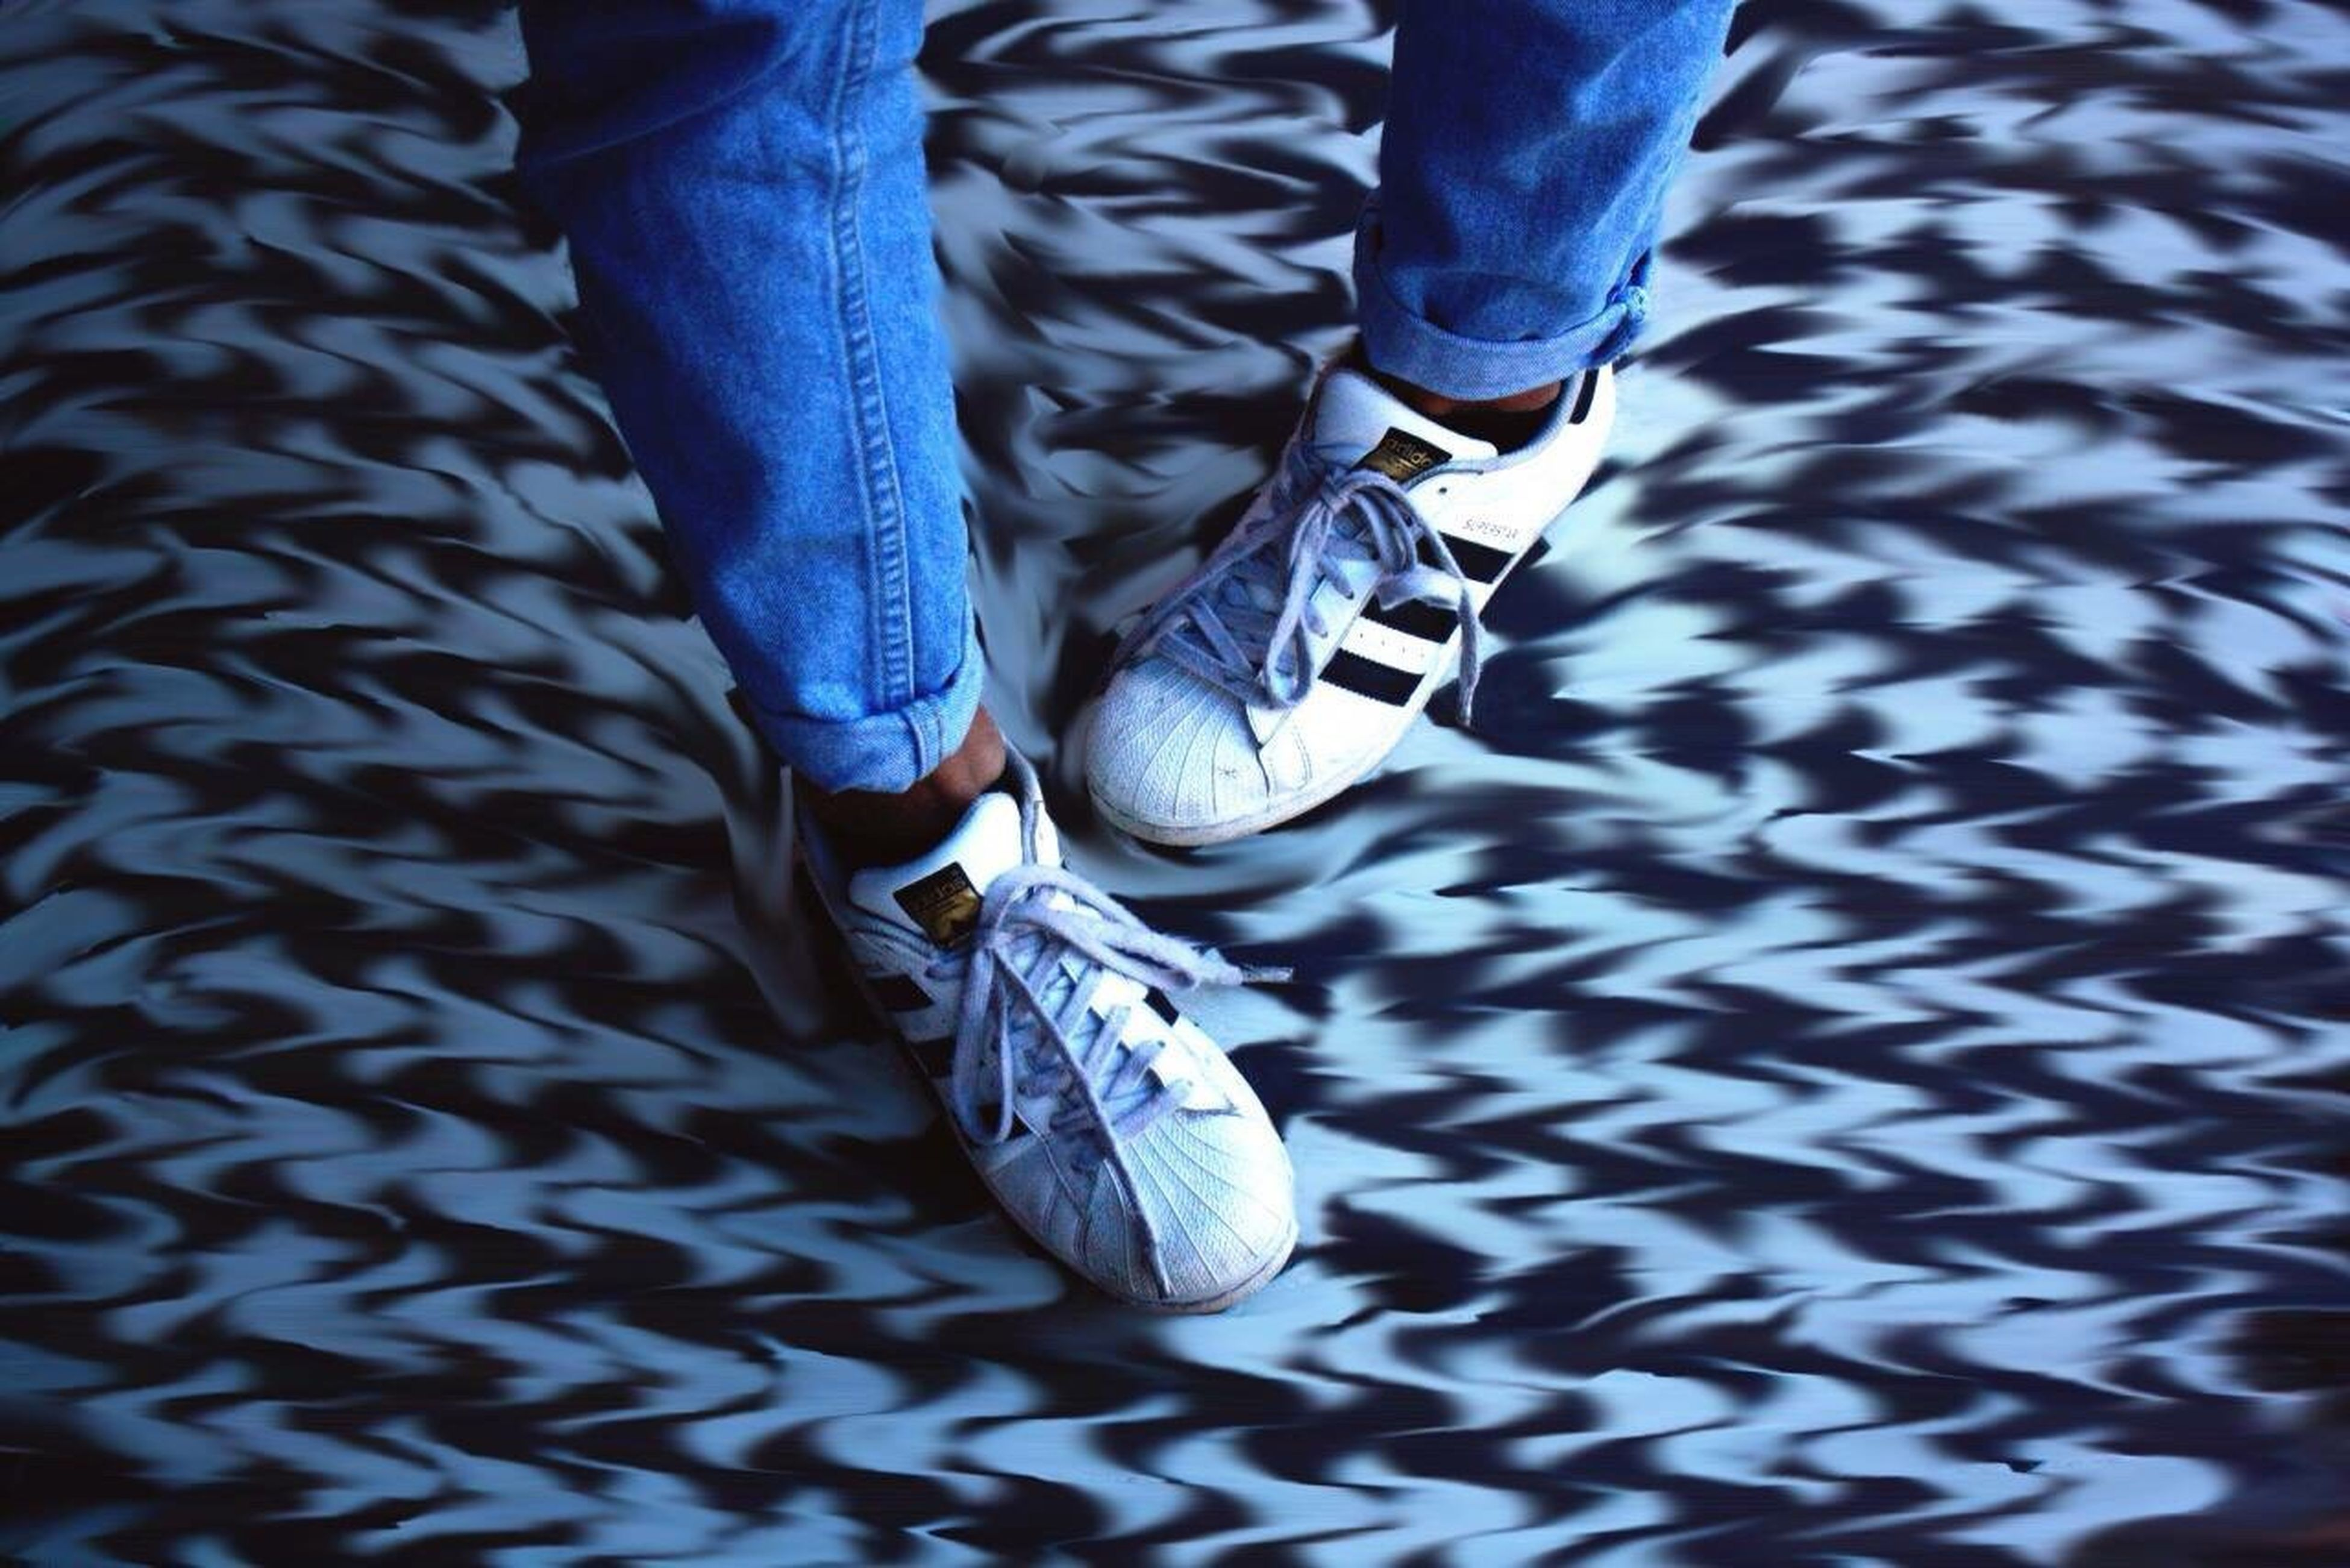 low section, shoe, person, footwear, jeans, blue, indoors, close-up, high angle view, part of, pattern, fashion, human foot, unrecognizable person, metal, pair, men